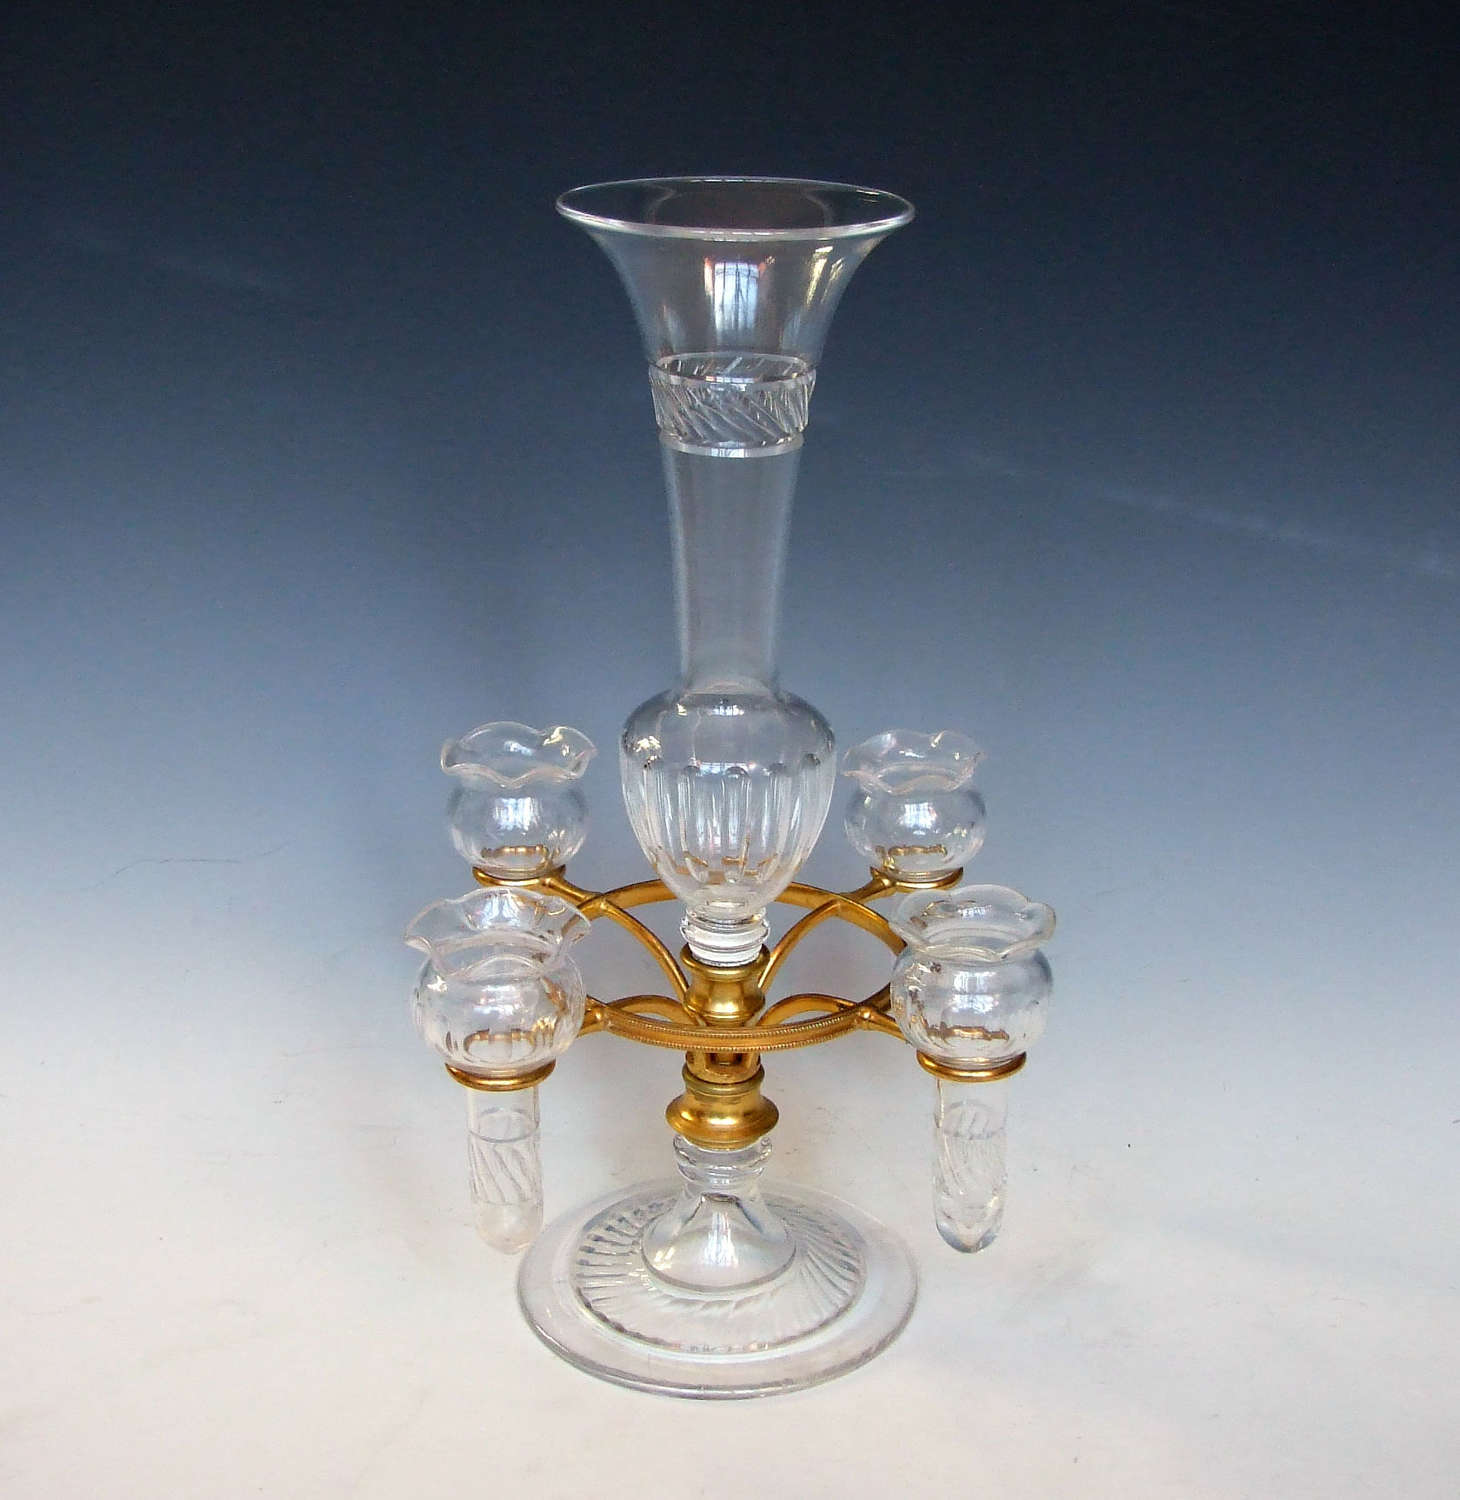 A rare 5 vase pedestal cut crystal and ormolu epergne.